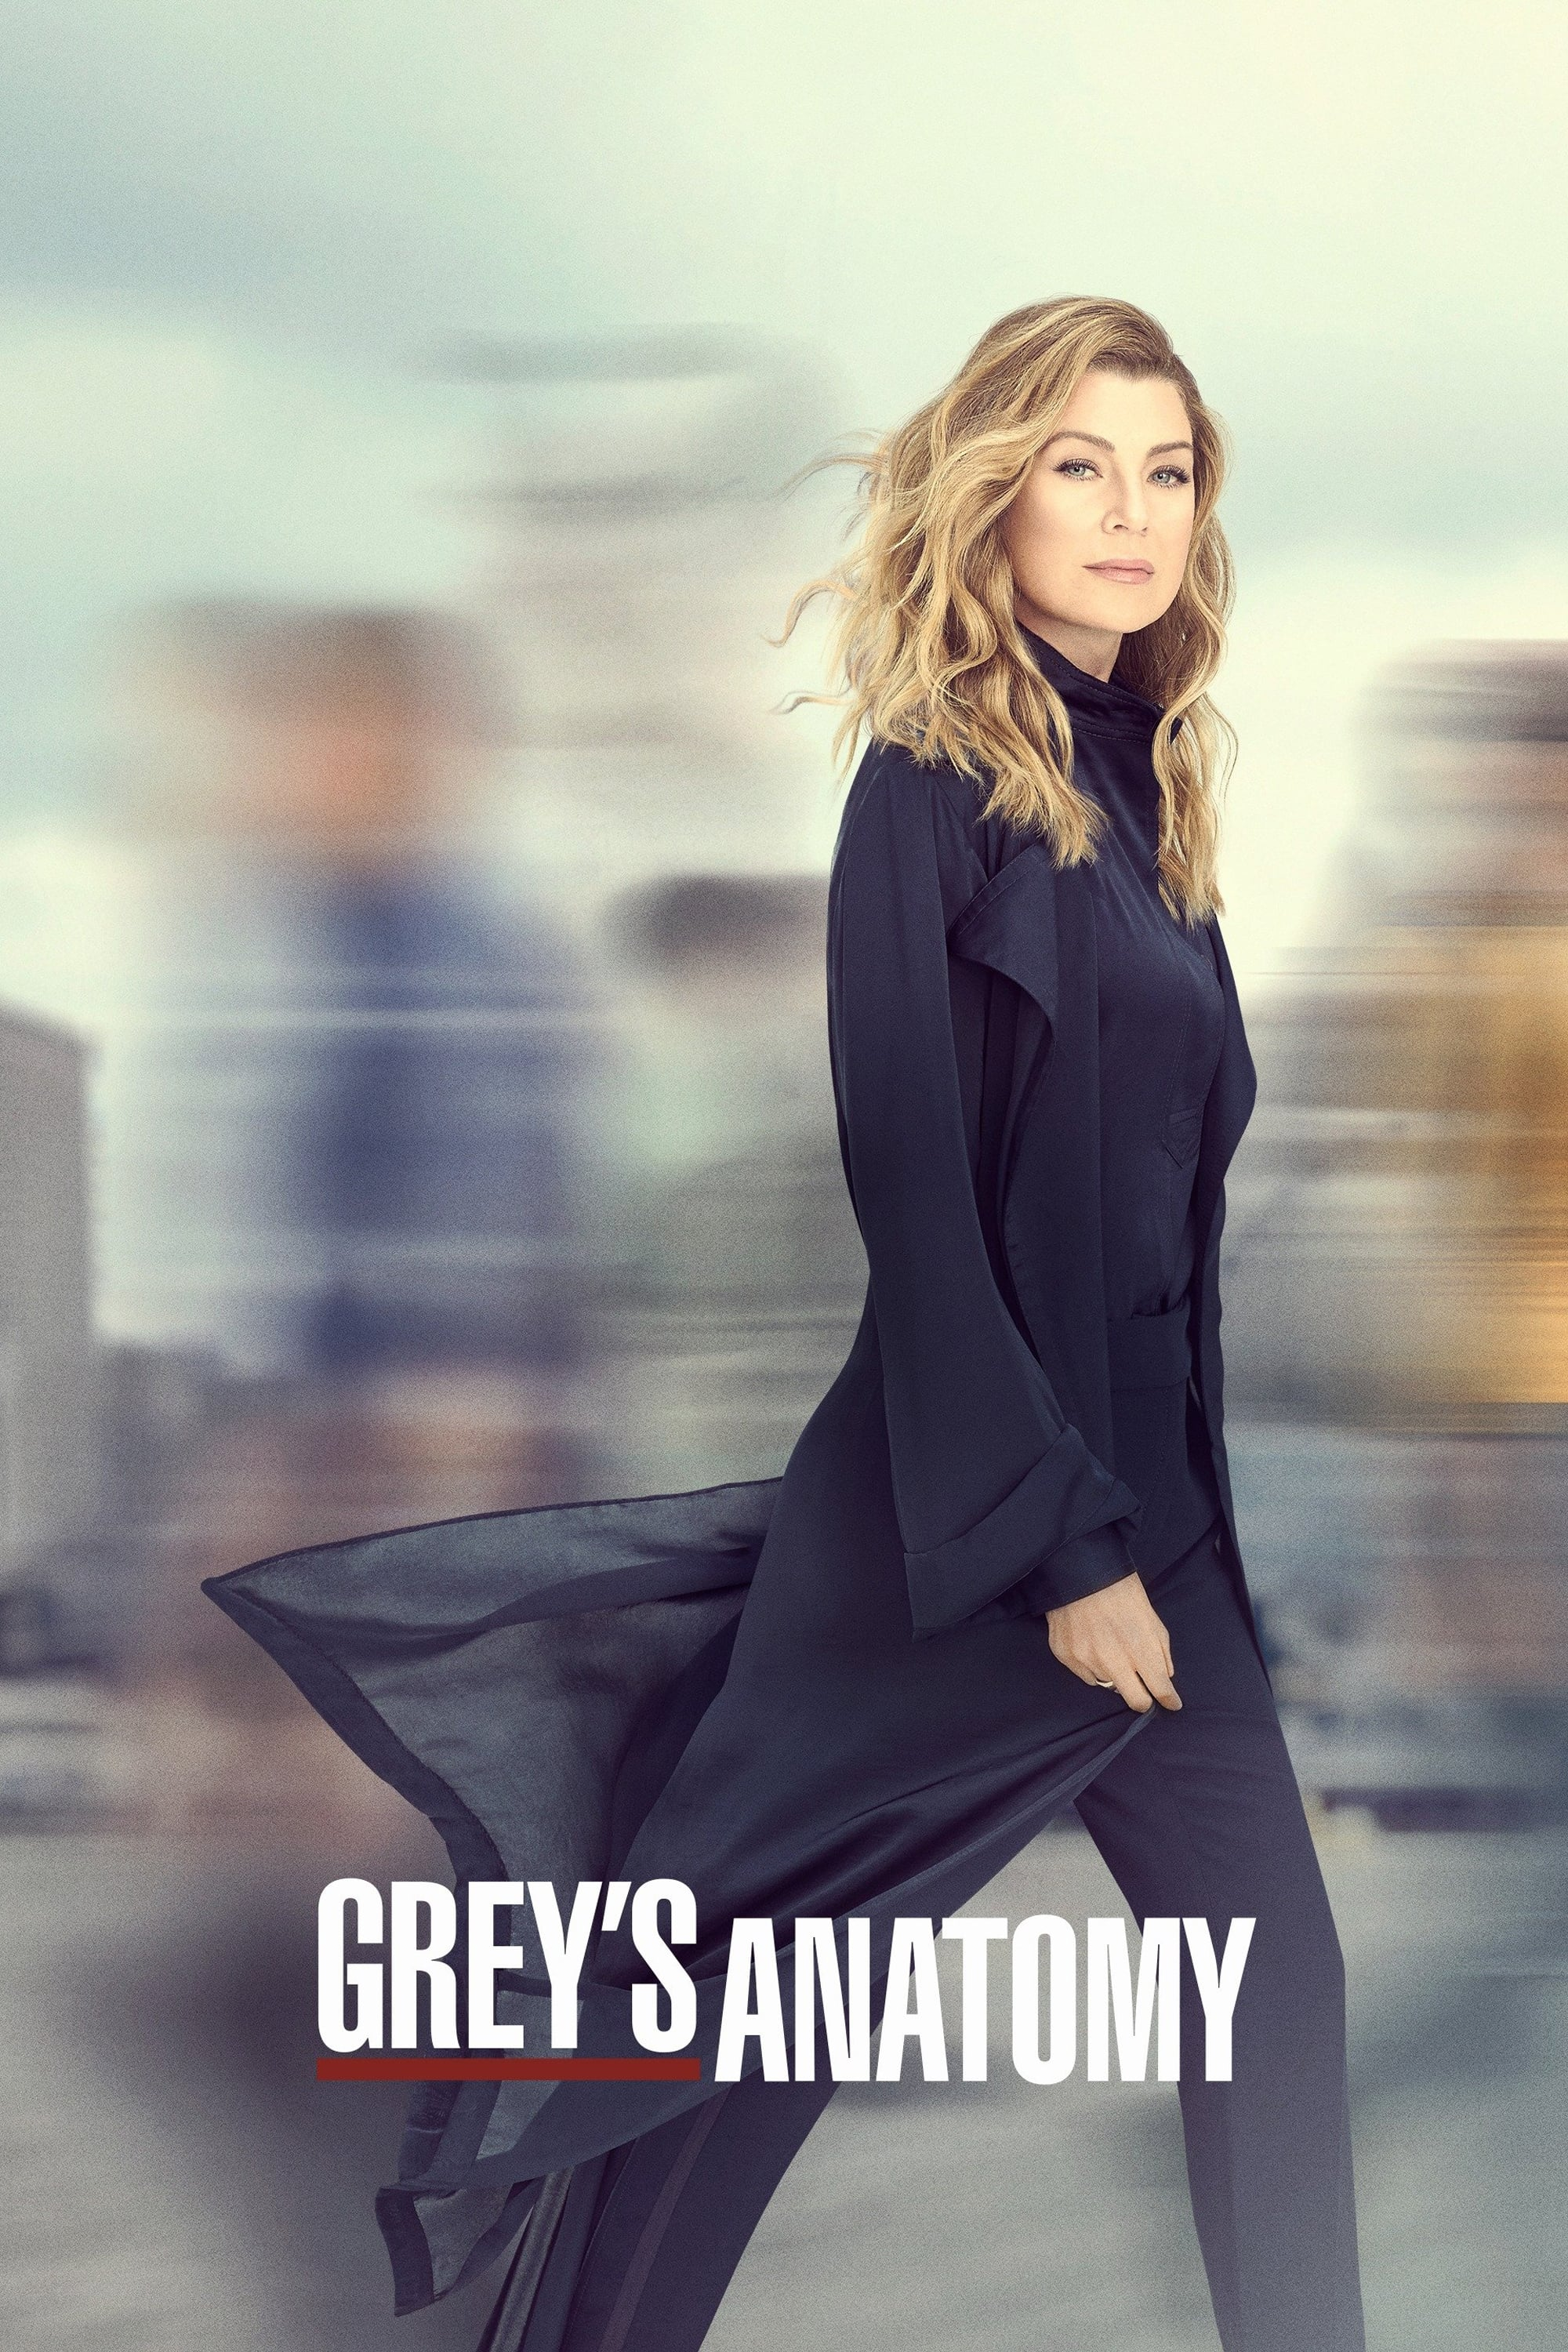 Grey's Anatomy Season 5 Episode 5 : There's No 'I' in Team